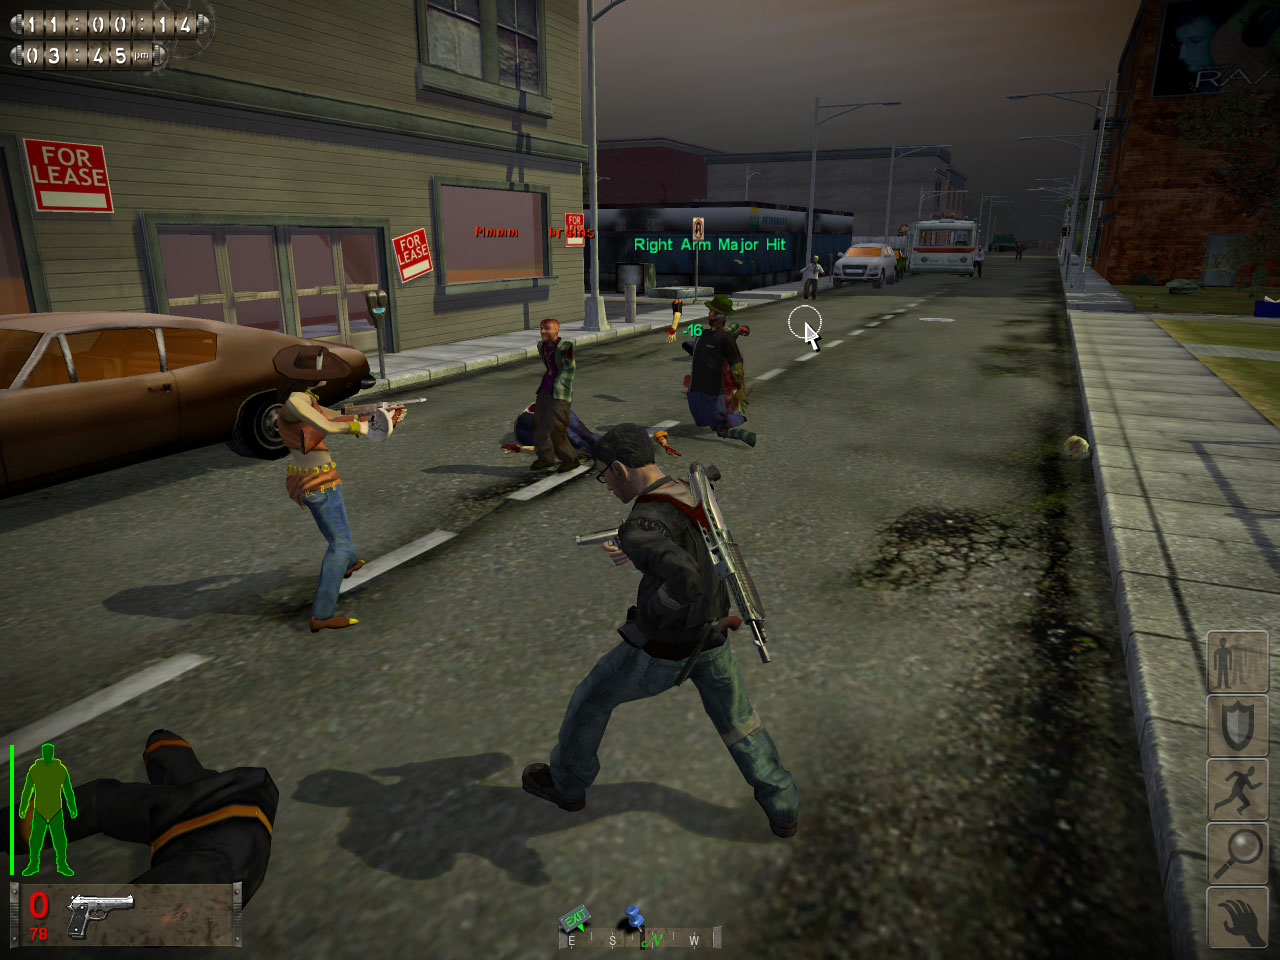 Fort Zombie Pc Download Games Keygen For Free Full Games